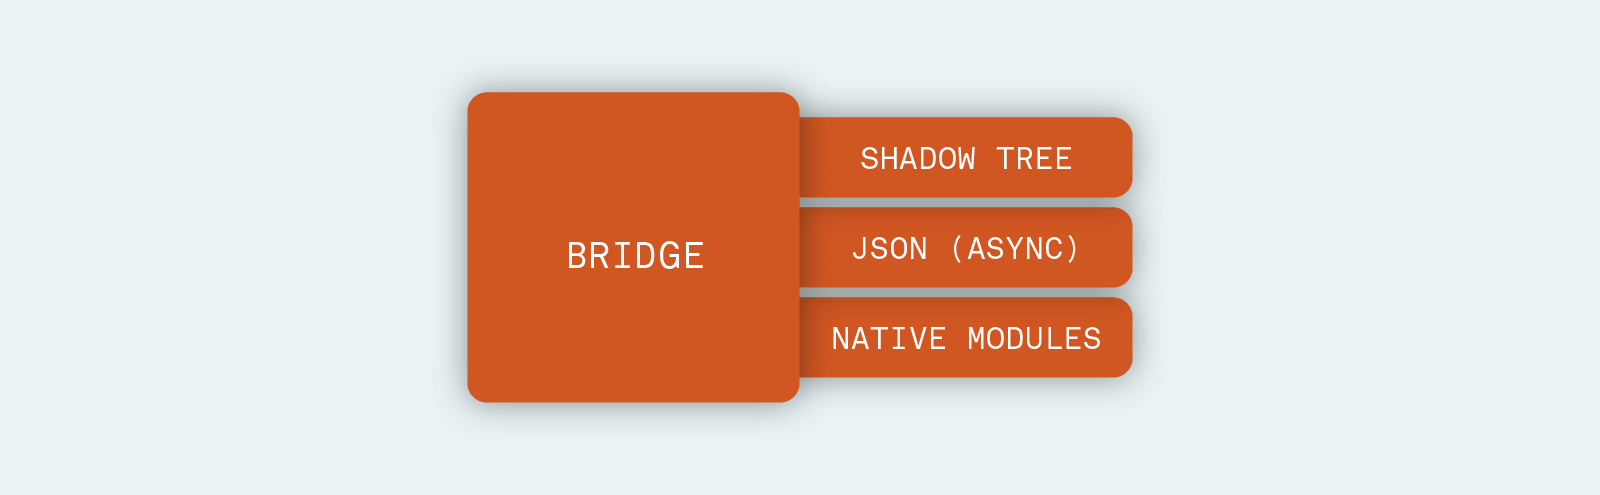 The New React Native Architecture Explained: Part Three